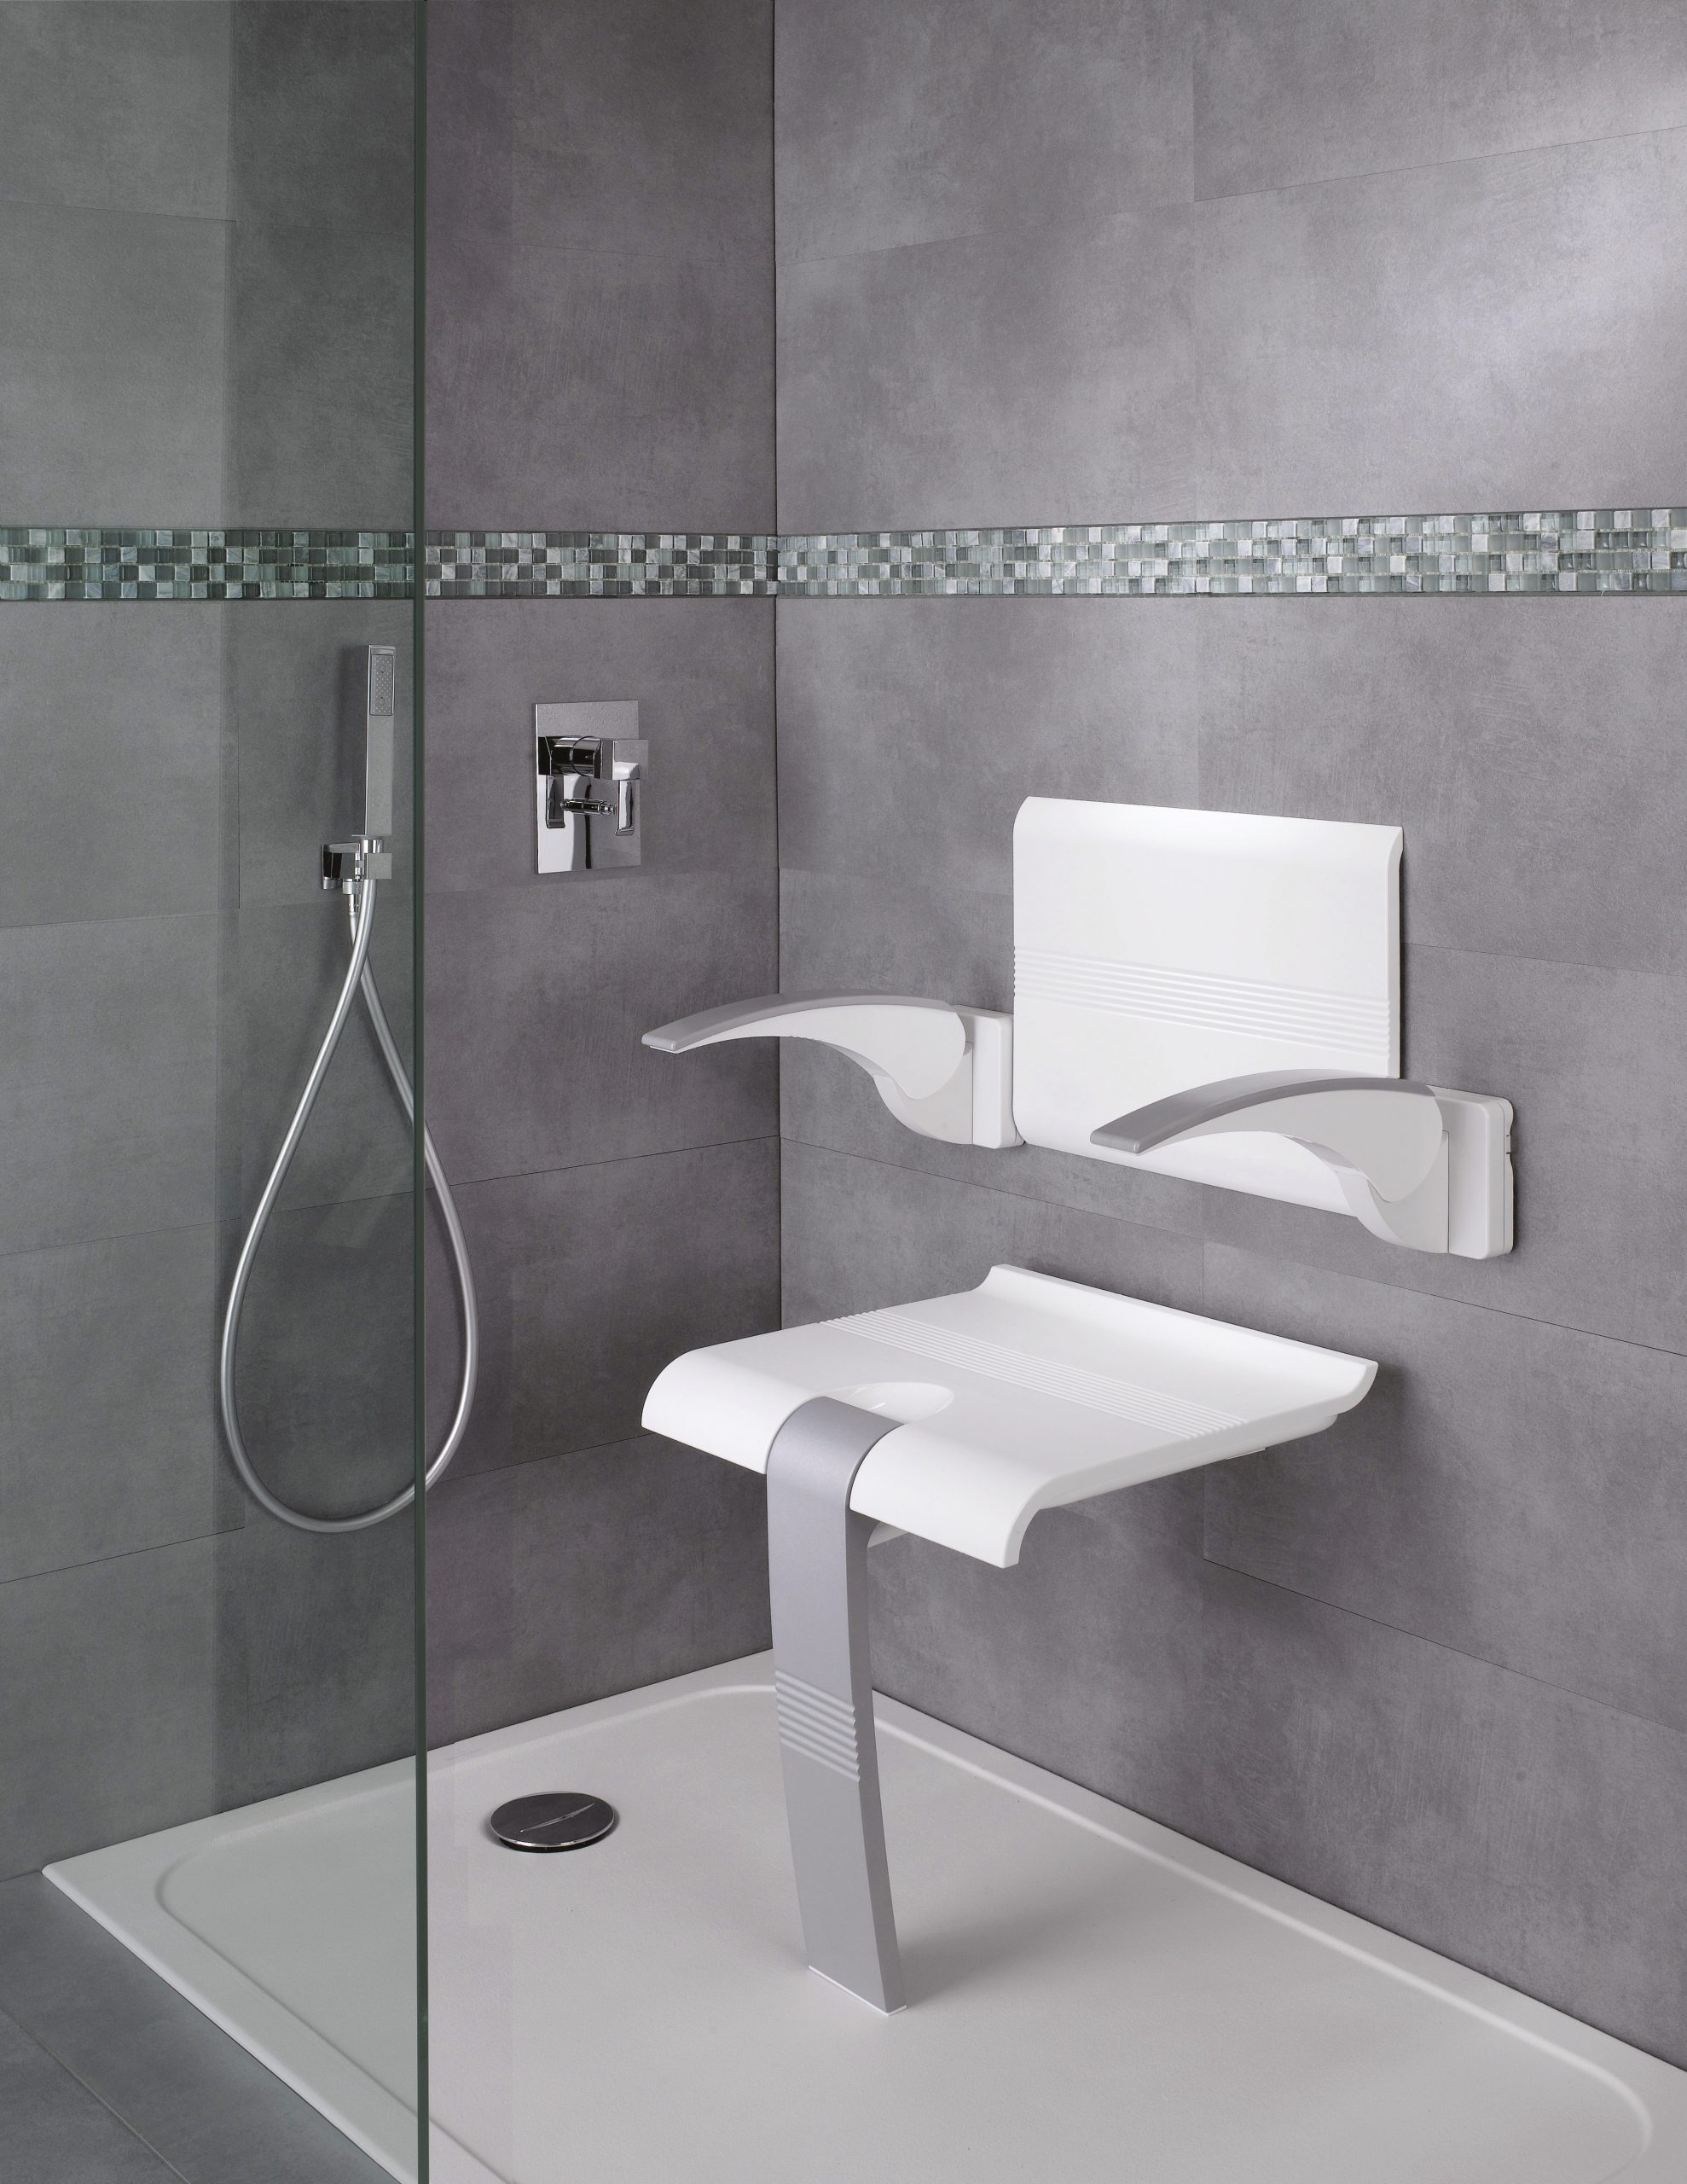 53258c0d1d2 White Backrest and Armrests for Arsis Shower Seat